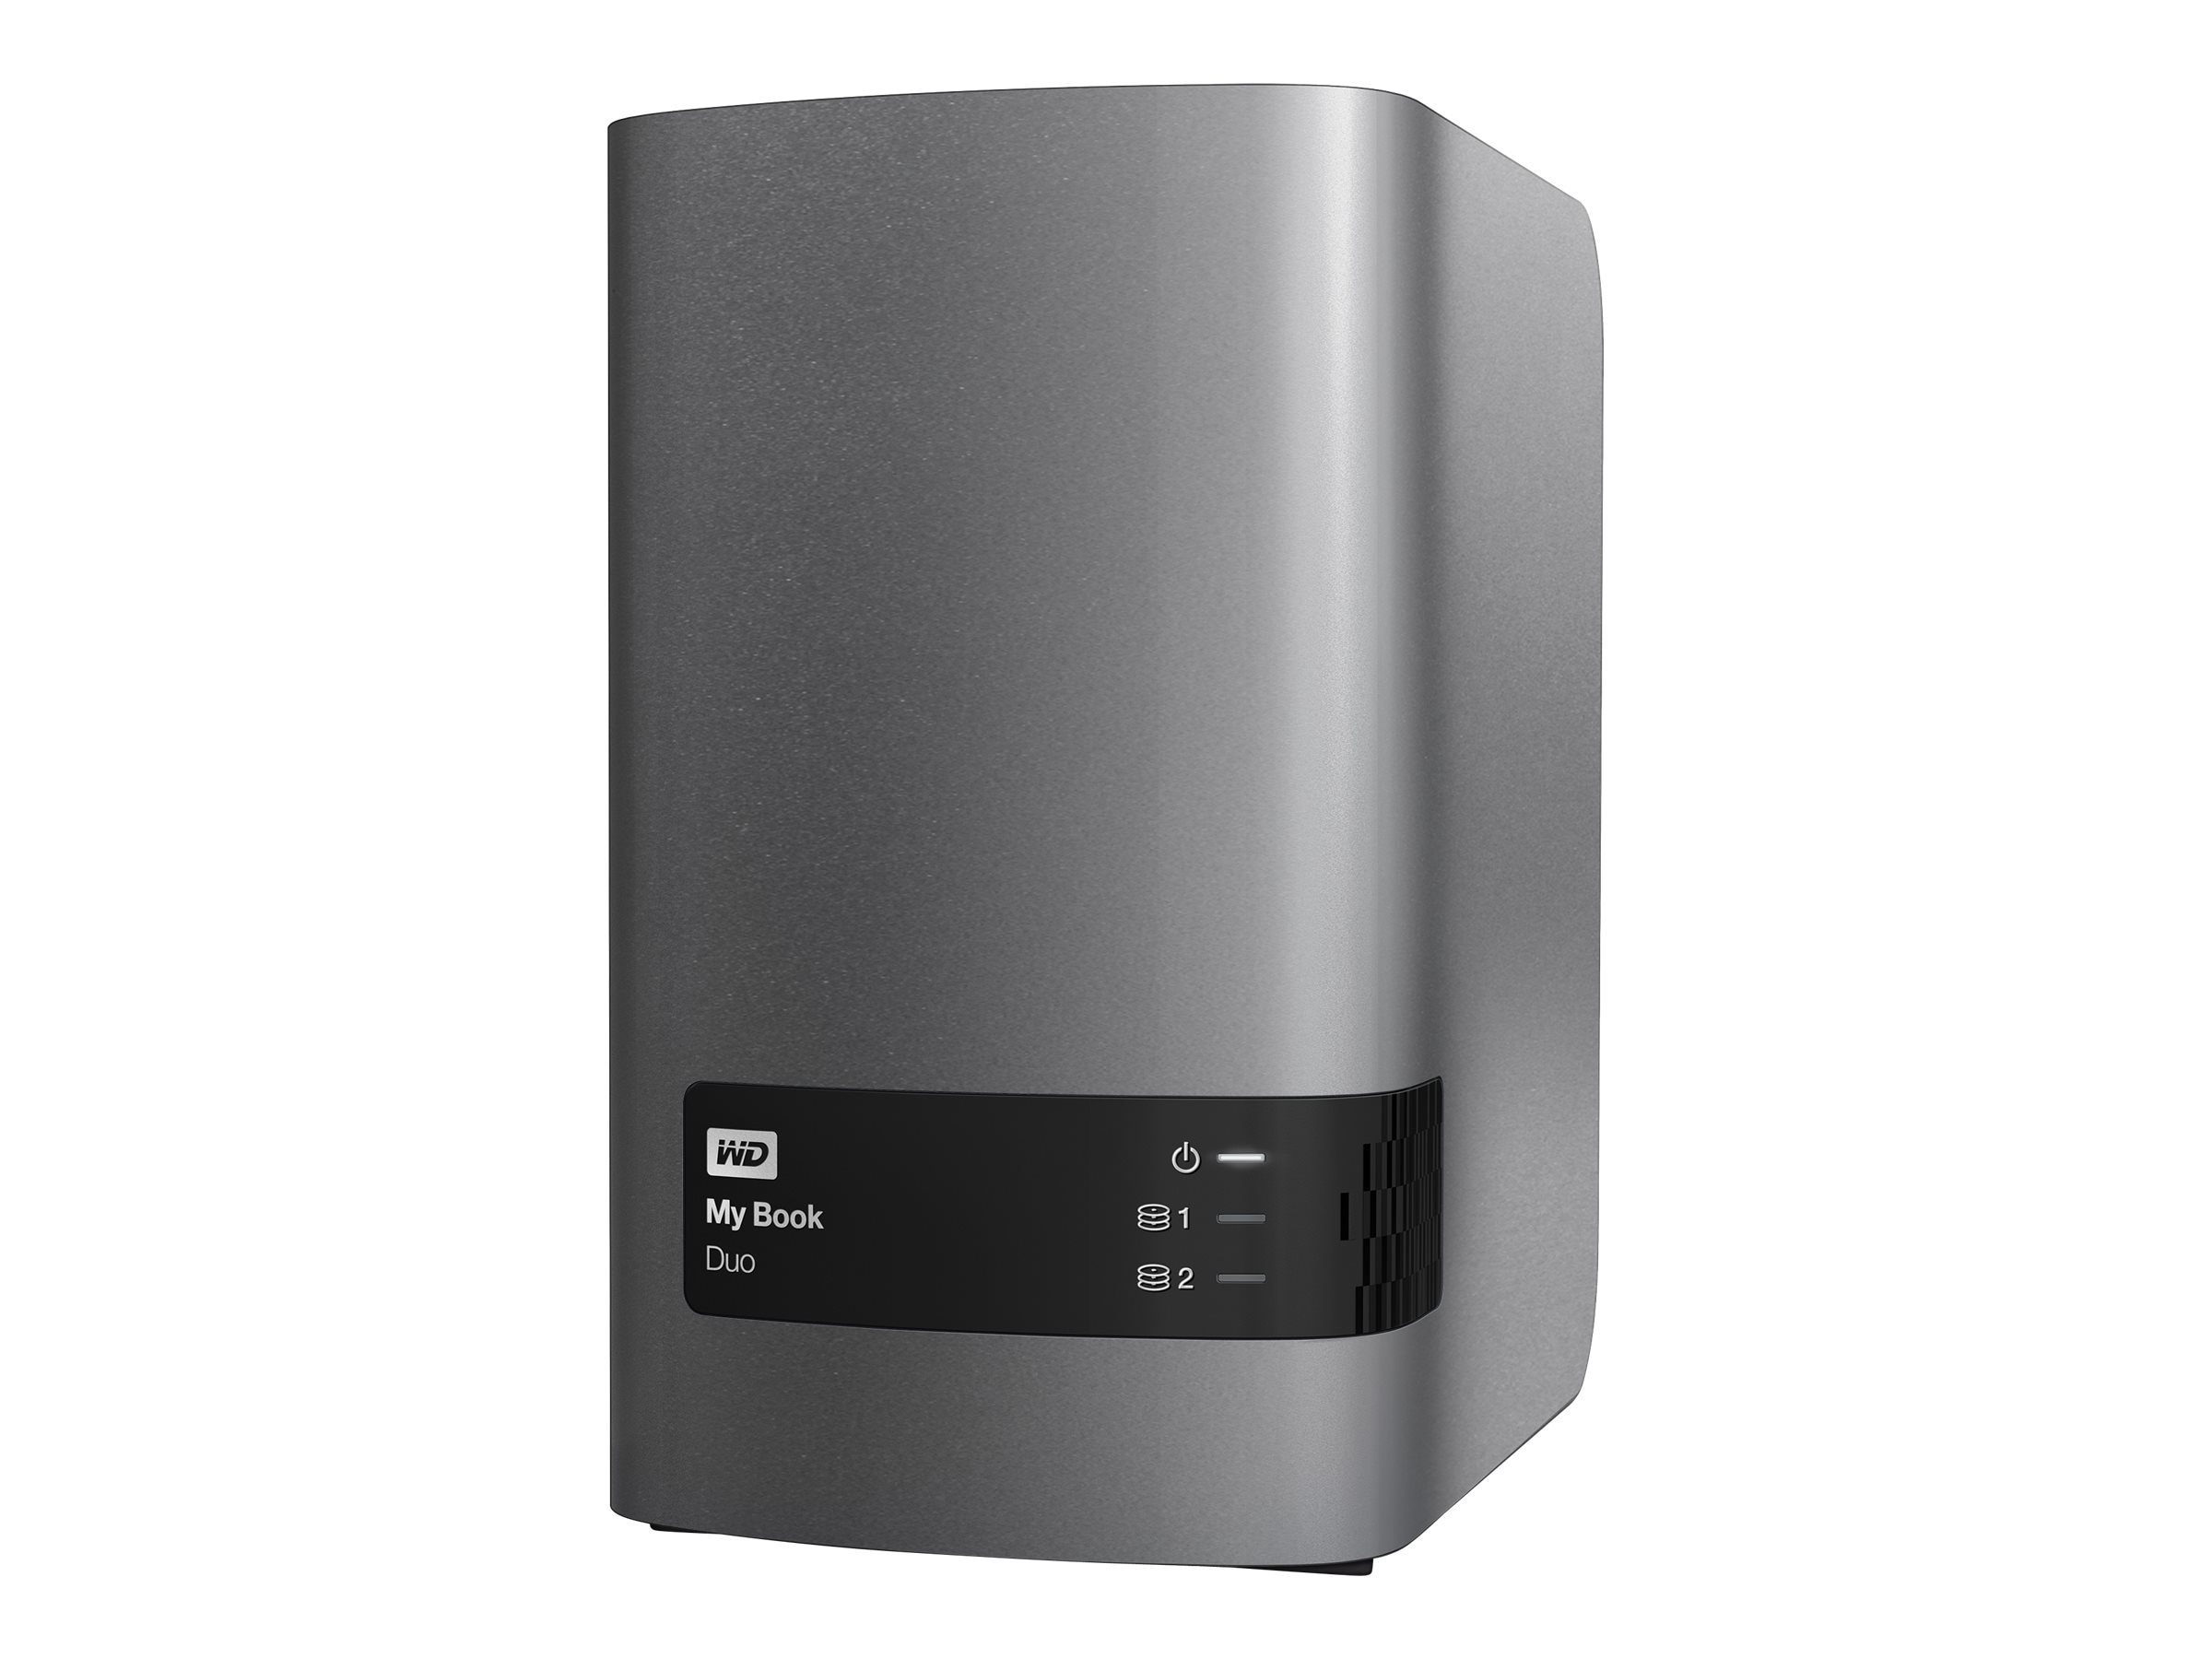 WD 4TB My Book Duo RAID Storage, WDBLWE0040JCH-NESN, 17379539, Hard Drives - External